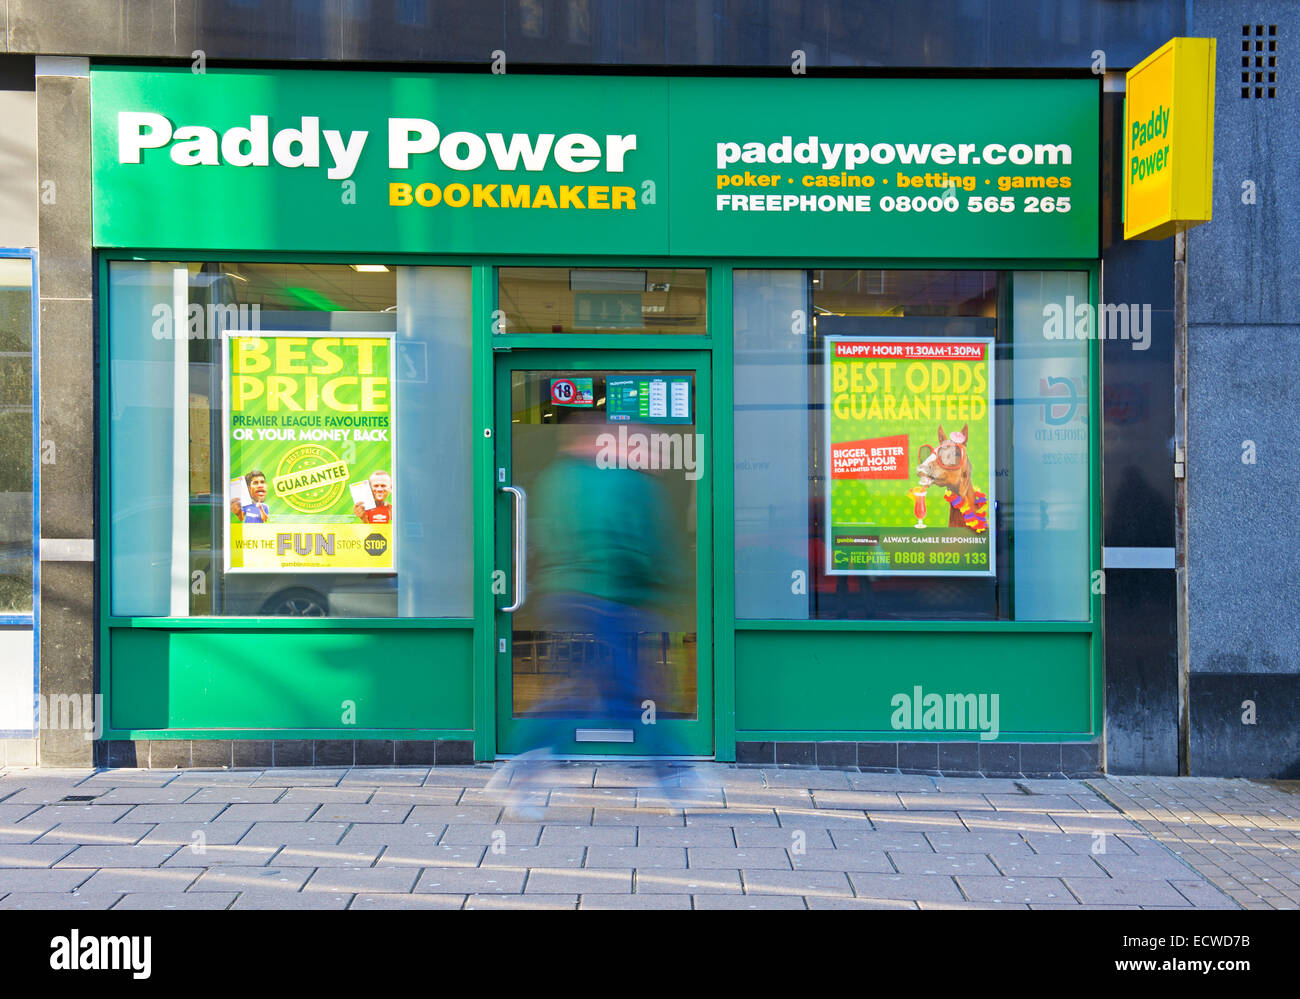 Blurred man walking past a branch of Paddy Power betting shop, England UK - Stock Image